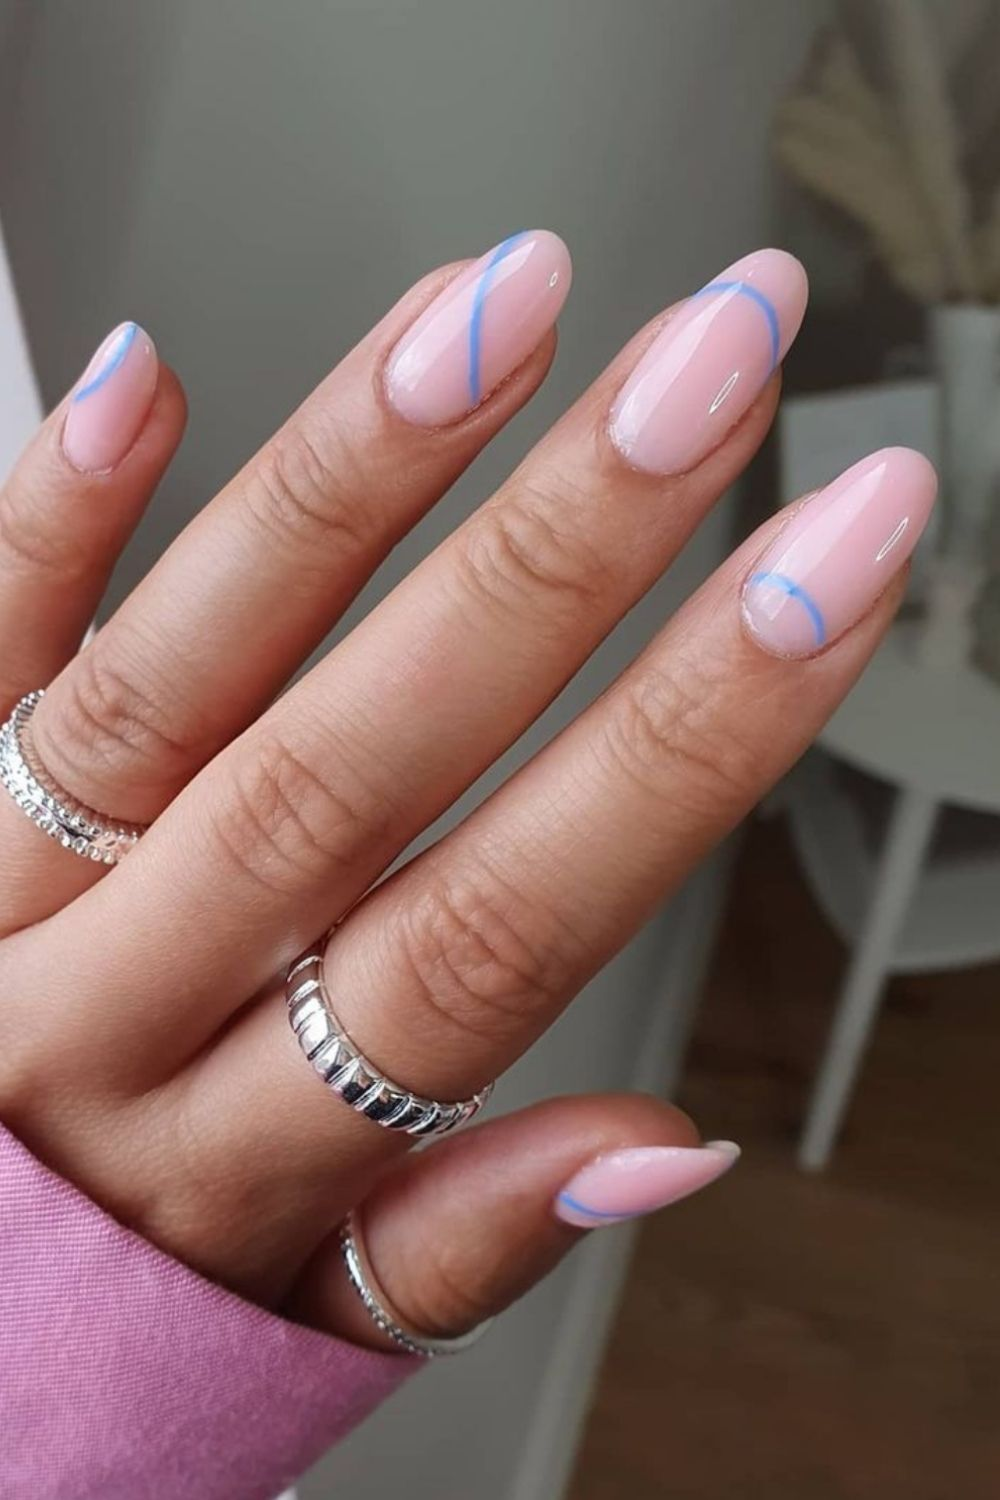 Best Summer nail colors 2021 ideas with short acrylic nails !